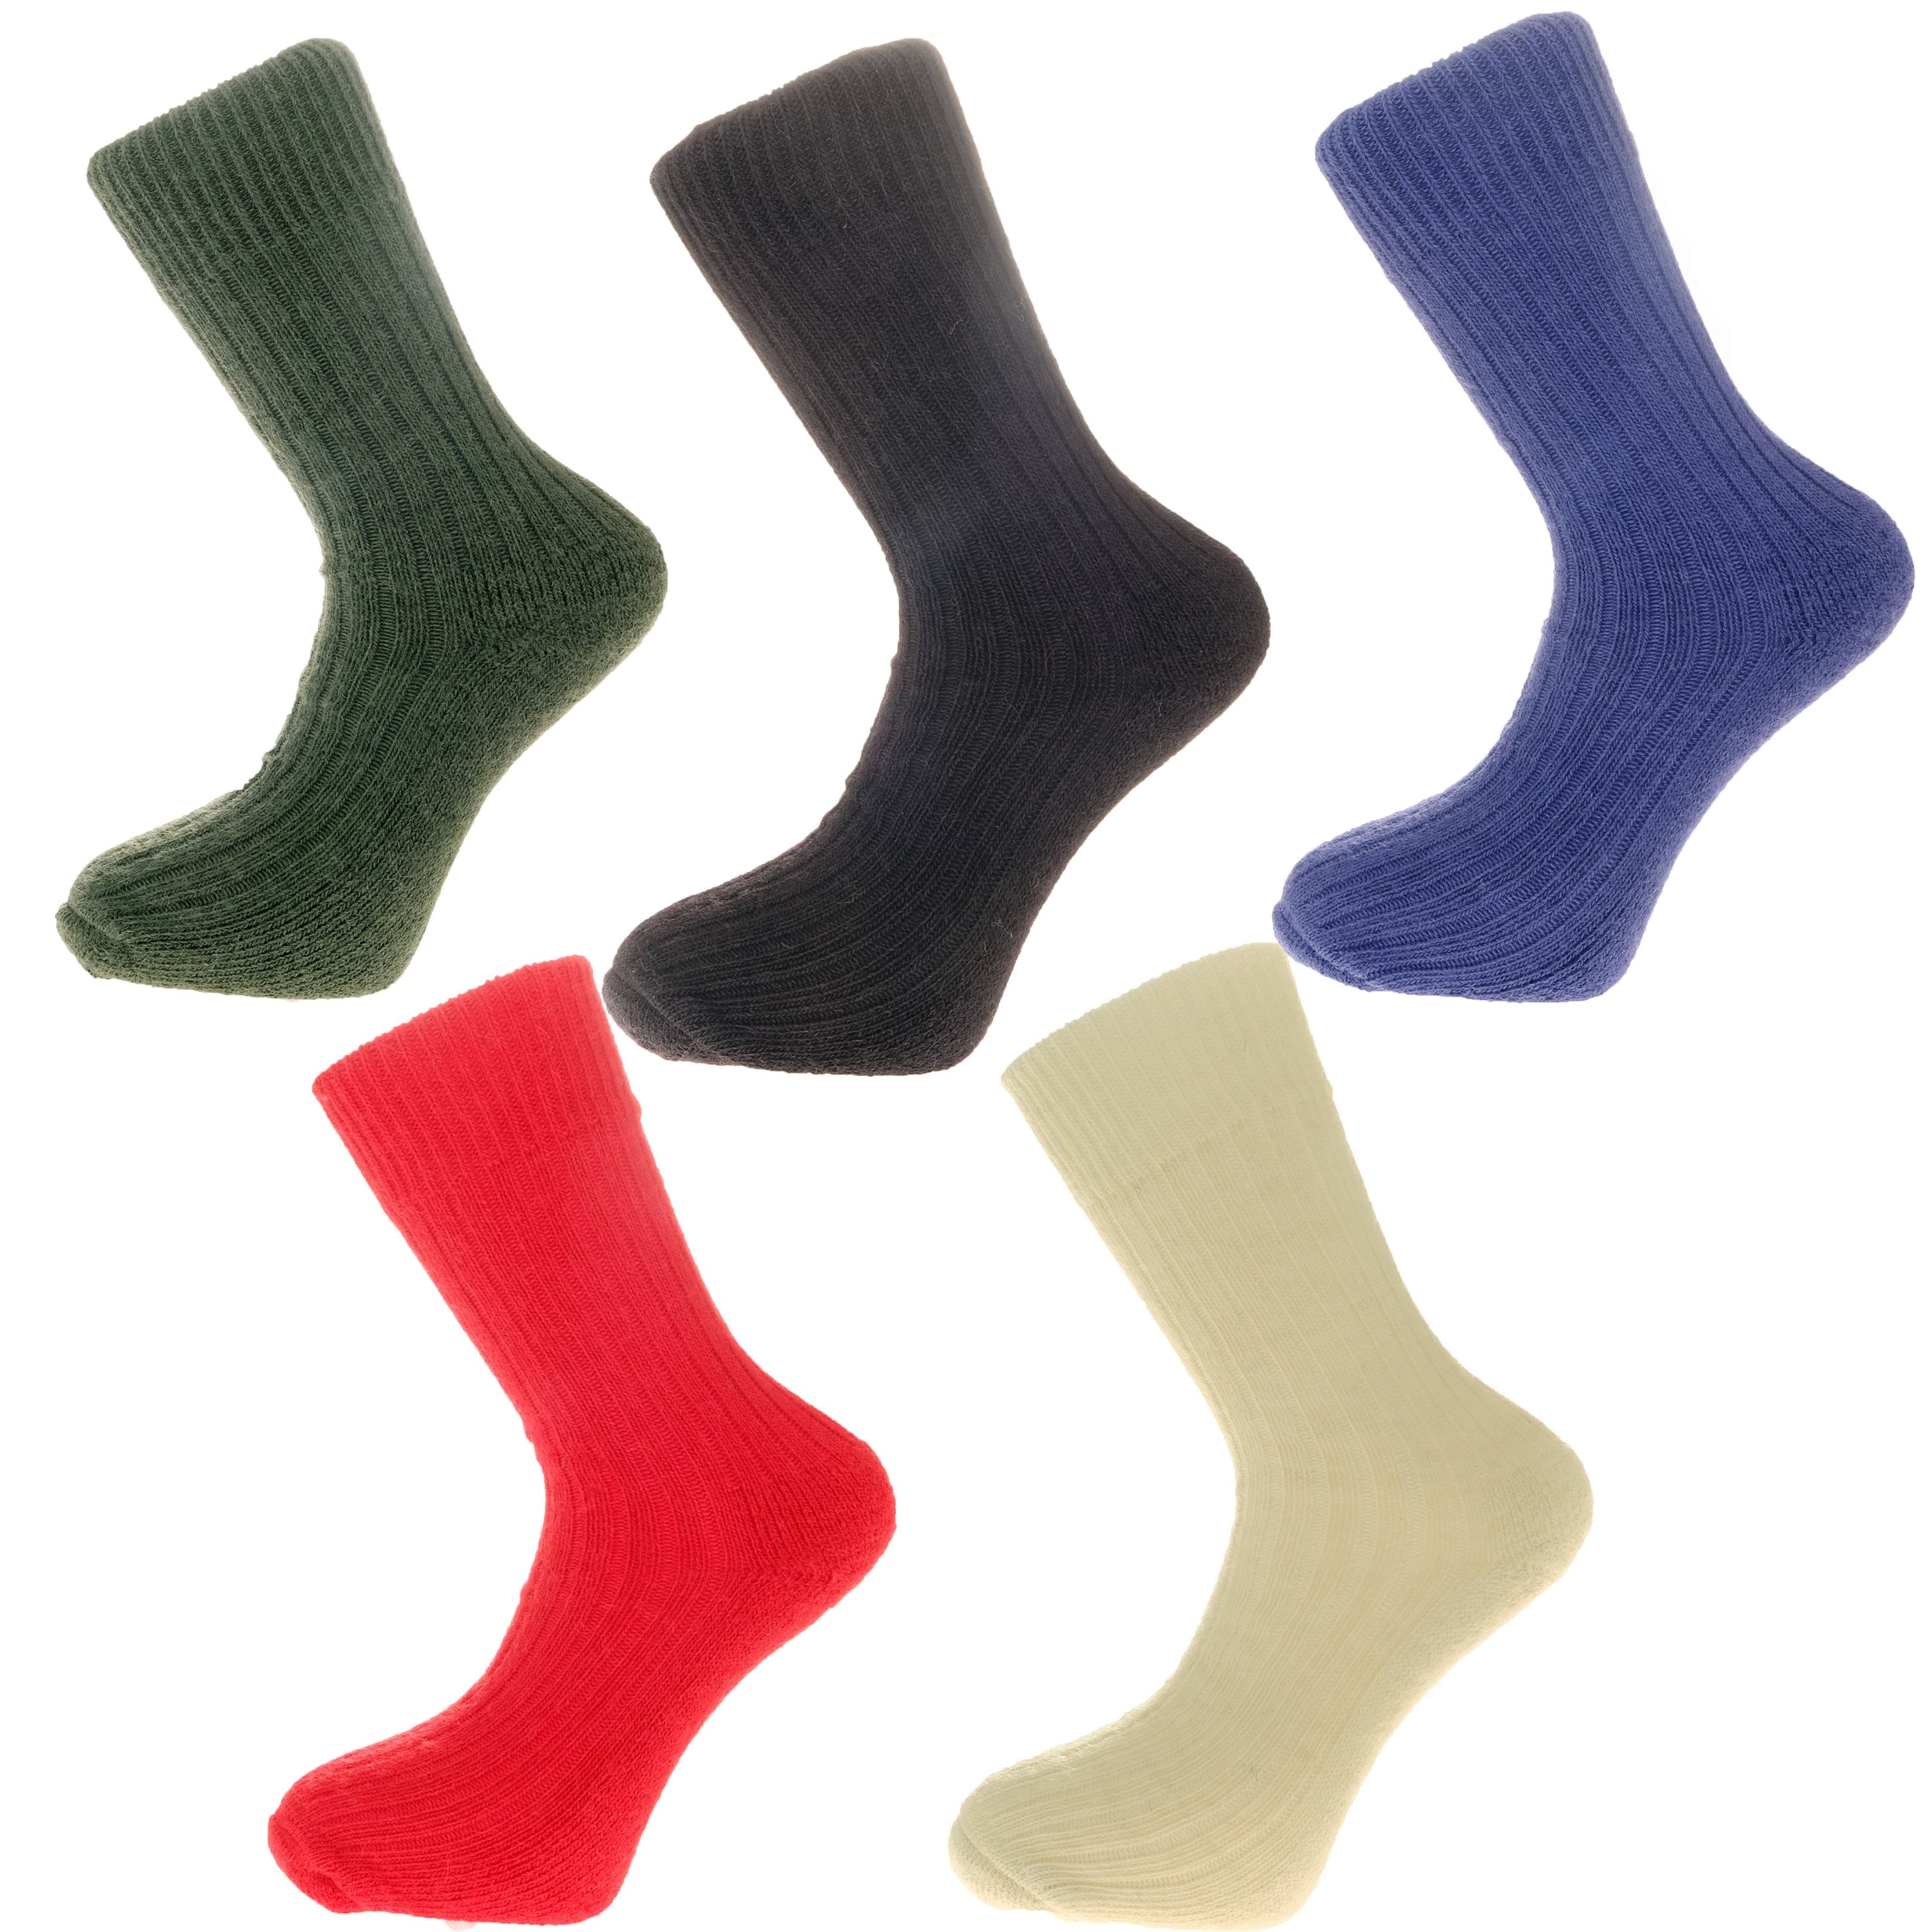 Gift Pack Idea G 5 pairs of Alpaca Walking Socks, Cushioned Sole, 75% Alpaca Wool. Alpaca Sock